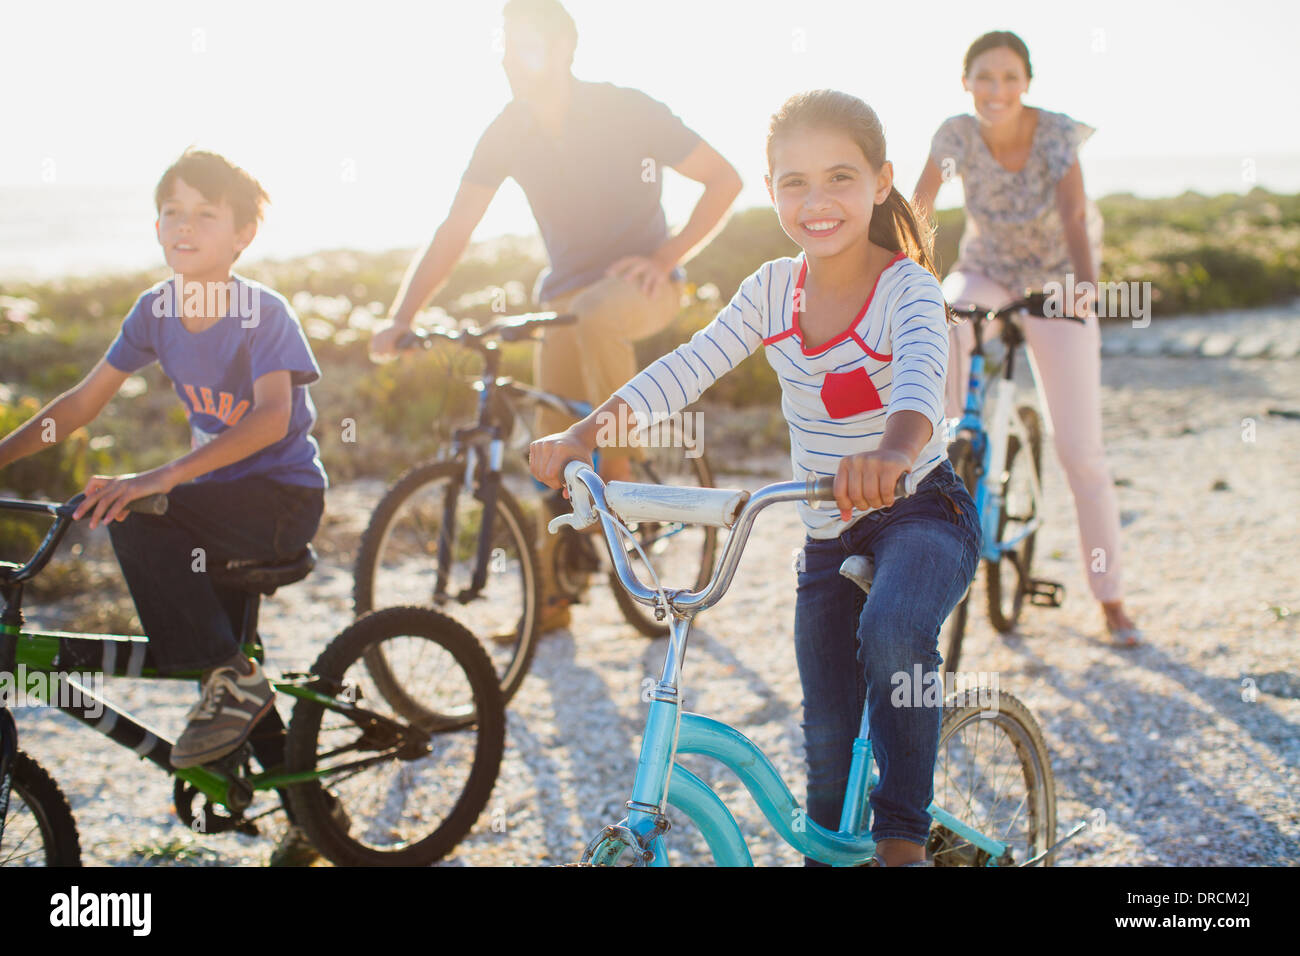 Family riding bicycles on sunny beach - Stock Image